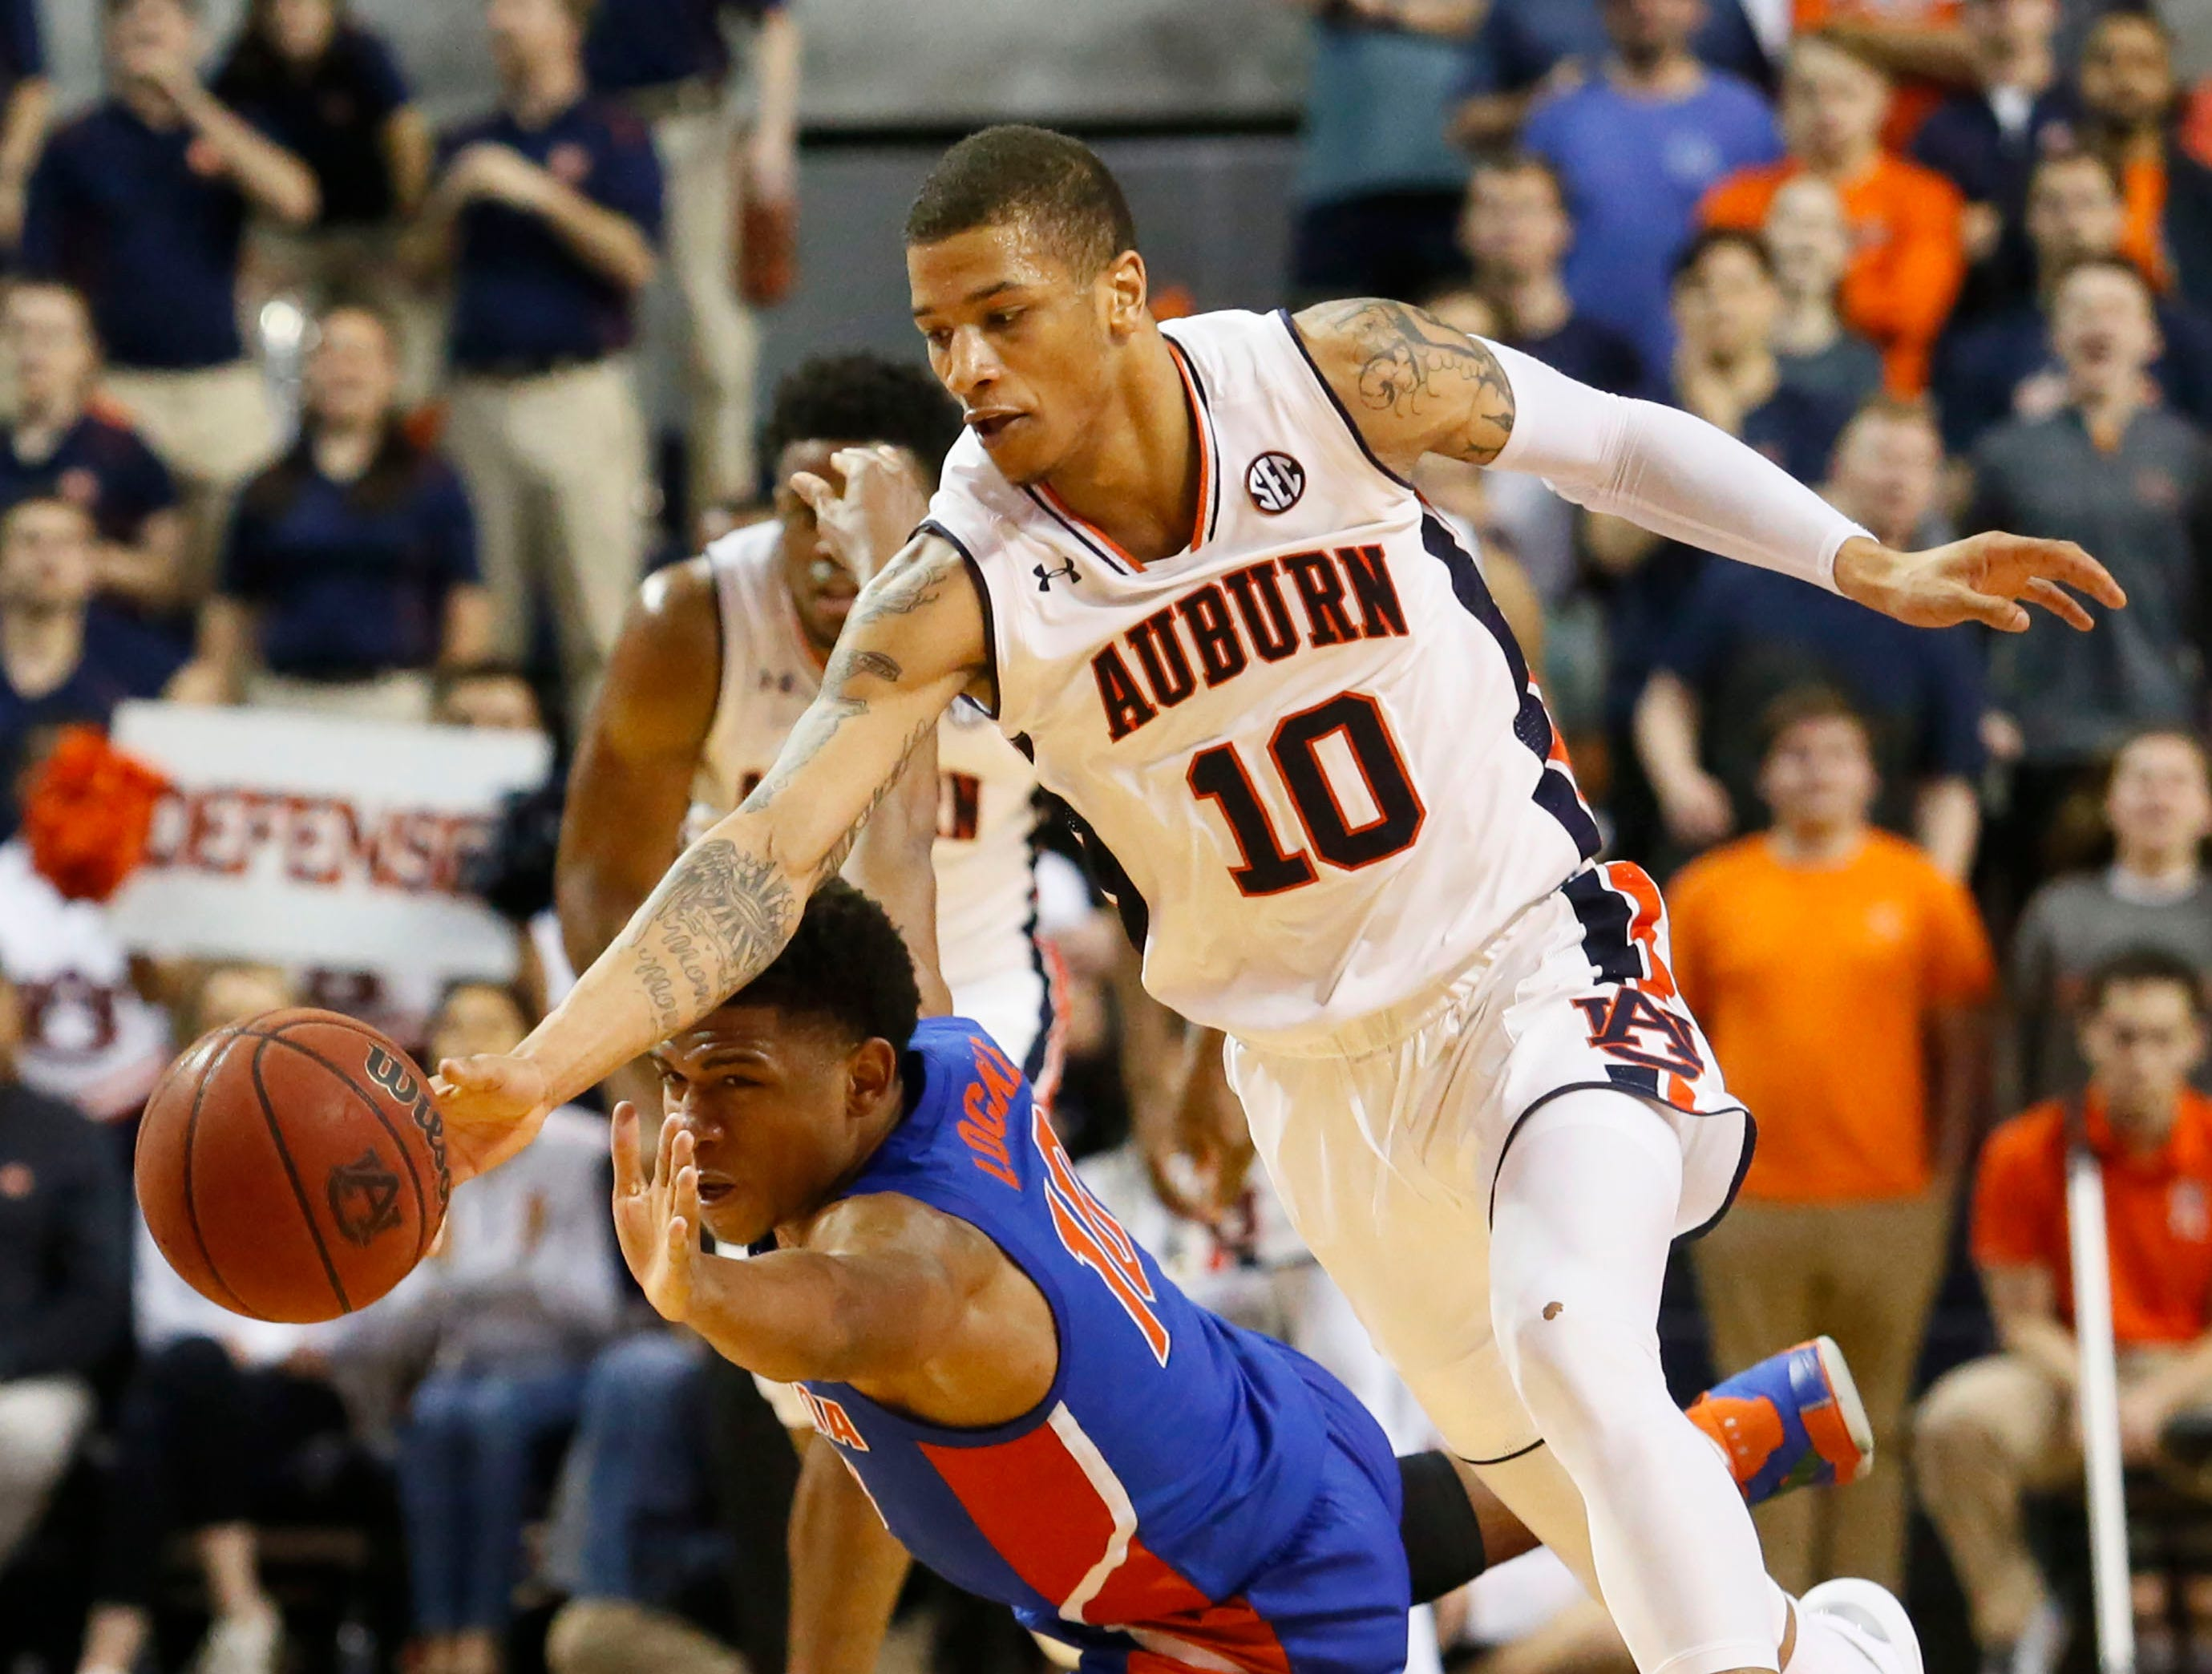 Feb 5, 2019; Auburn, AL, USA; Auburn Tigers guard Samir Doughty (10) and Florida Gators guard Noah Locke (10) go for the ball during the second half at Auburn Arena. Mandatory Credit: John Reed-USA TODAY Sports